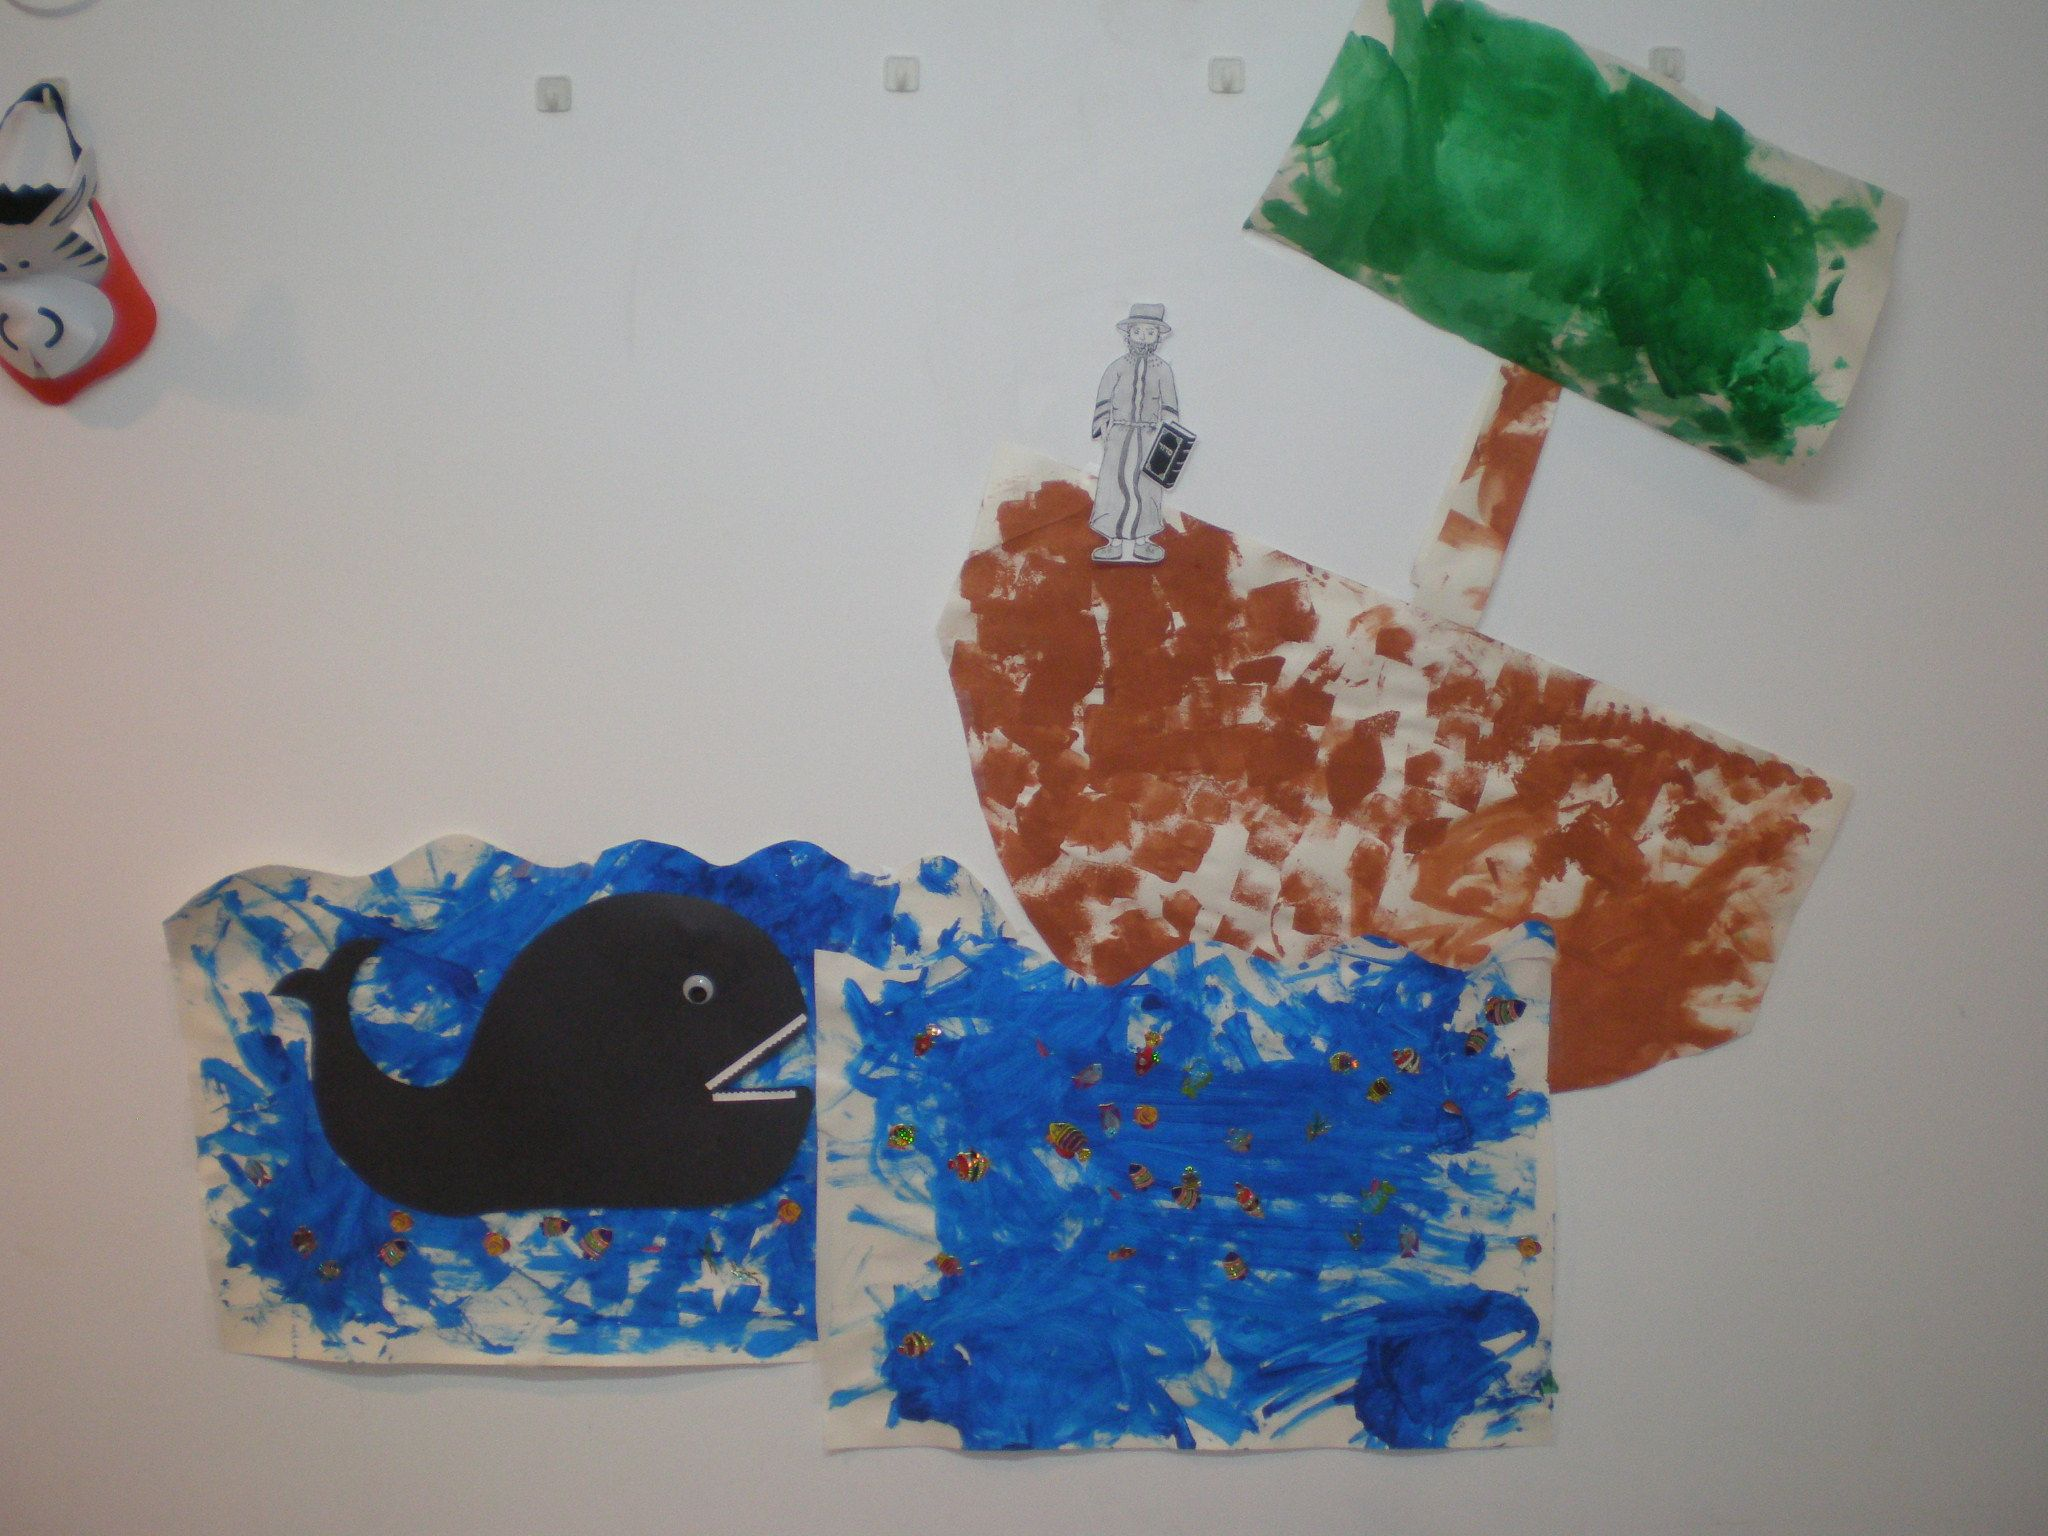 Wall art: Yom Kippur - Iona & the whale.  the children painted the boat & water. They put fish stickers. Iona is taped to the wall so we were able to move him around and even put him inside the whale! kids loved it!